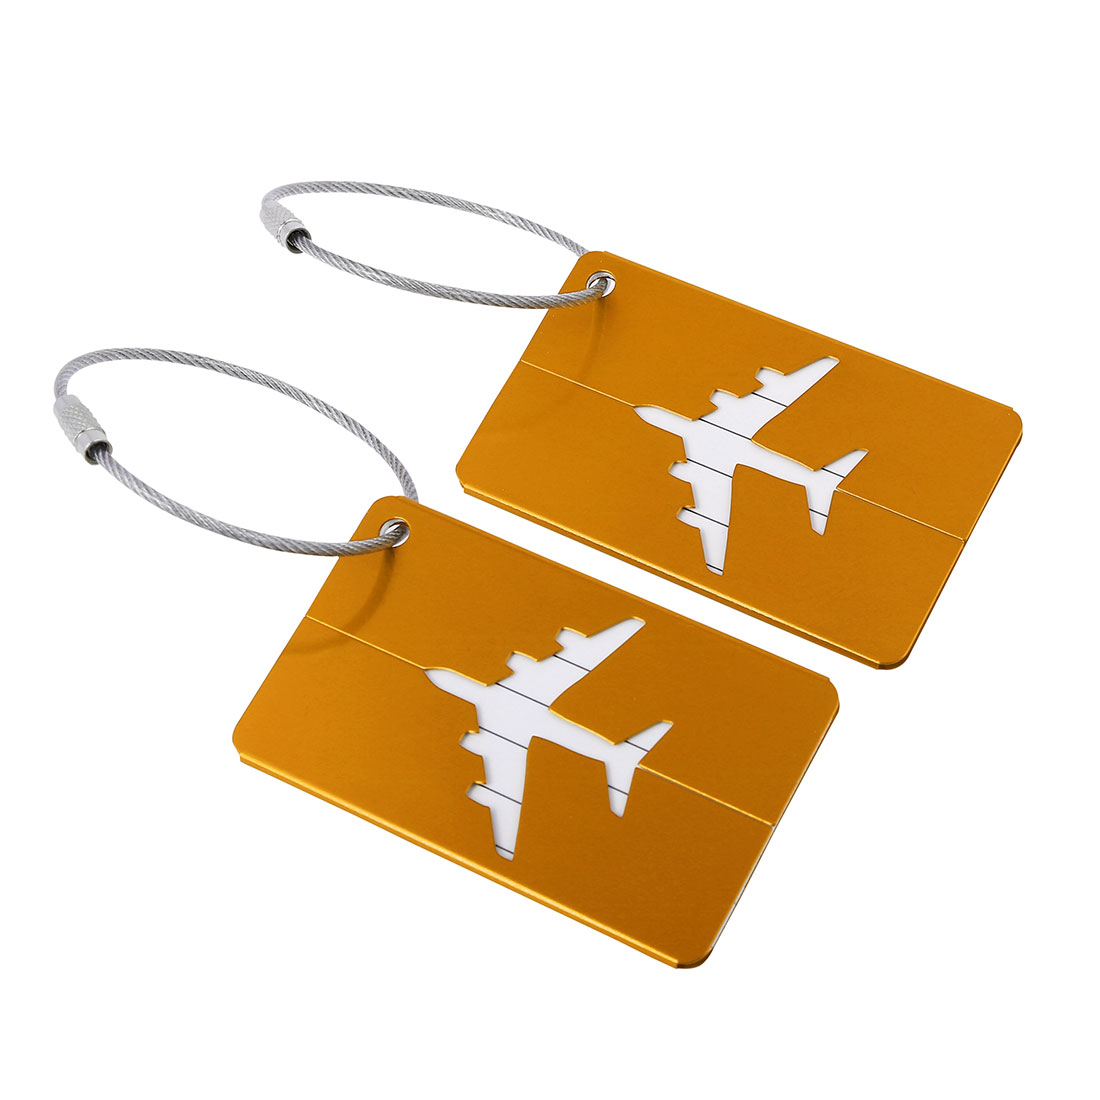 Travel Luggage Bag Tags Suitcase Baggage Name Address Labels Gold Tone 2pcs